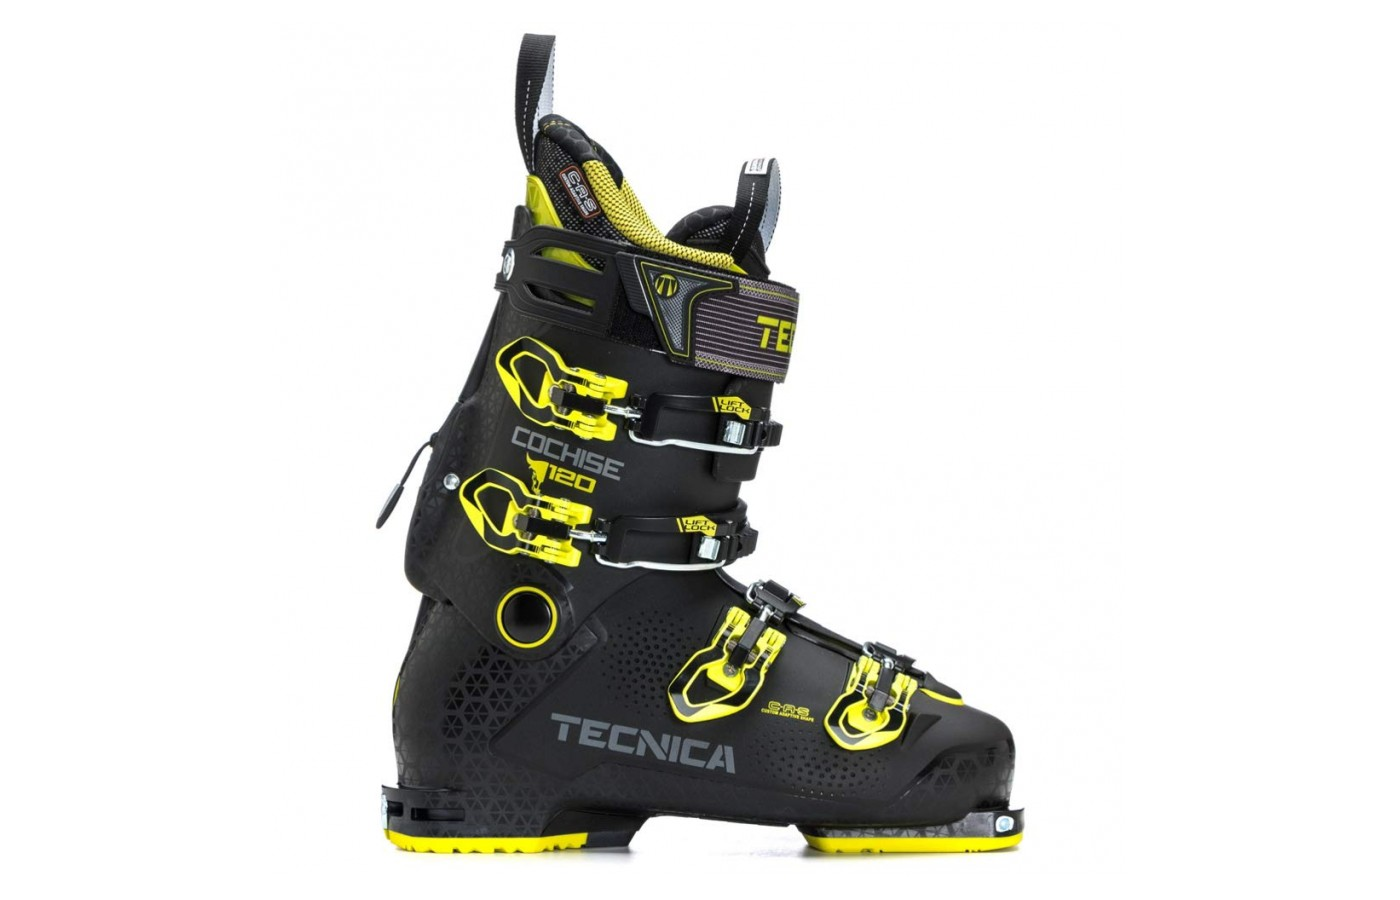 These ski boots are very lightweight.